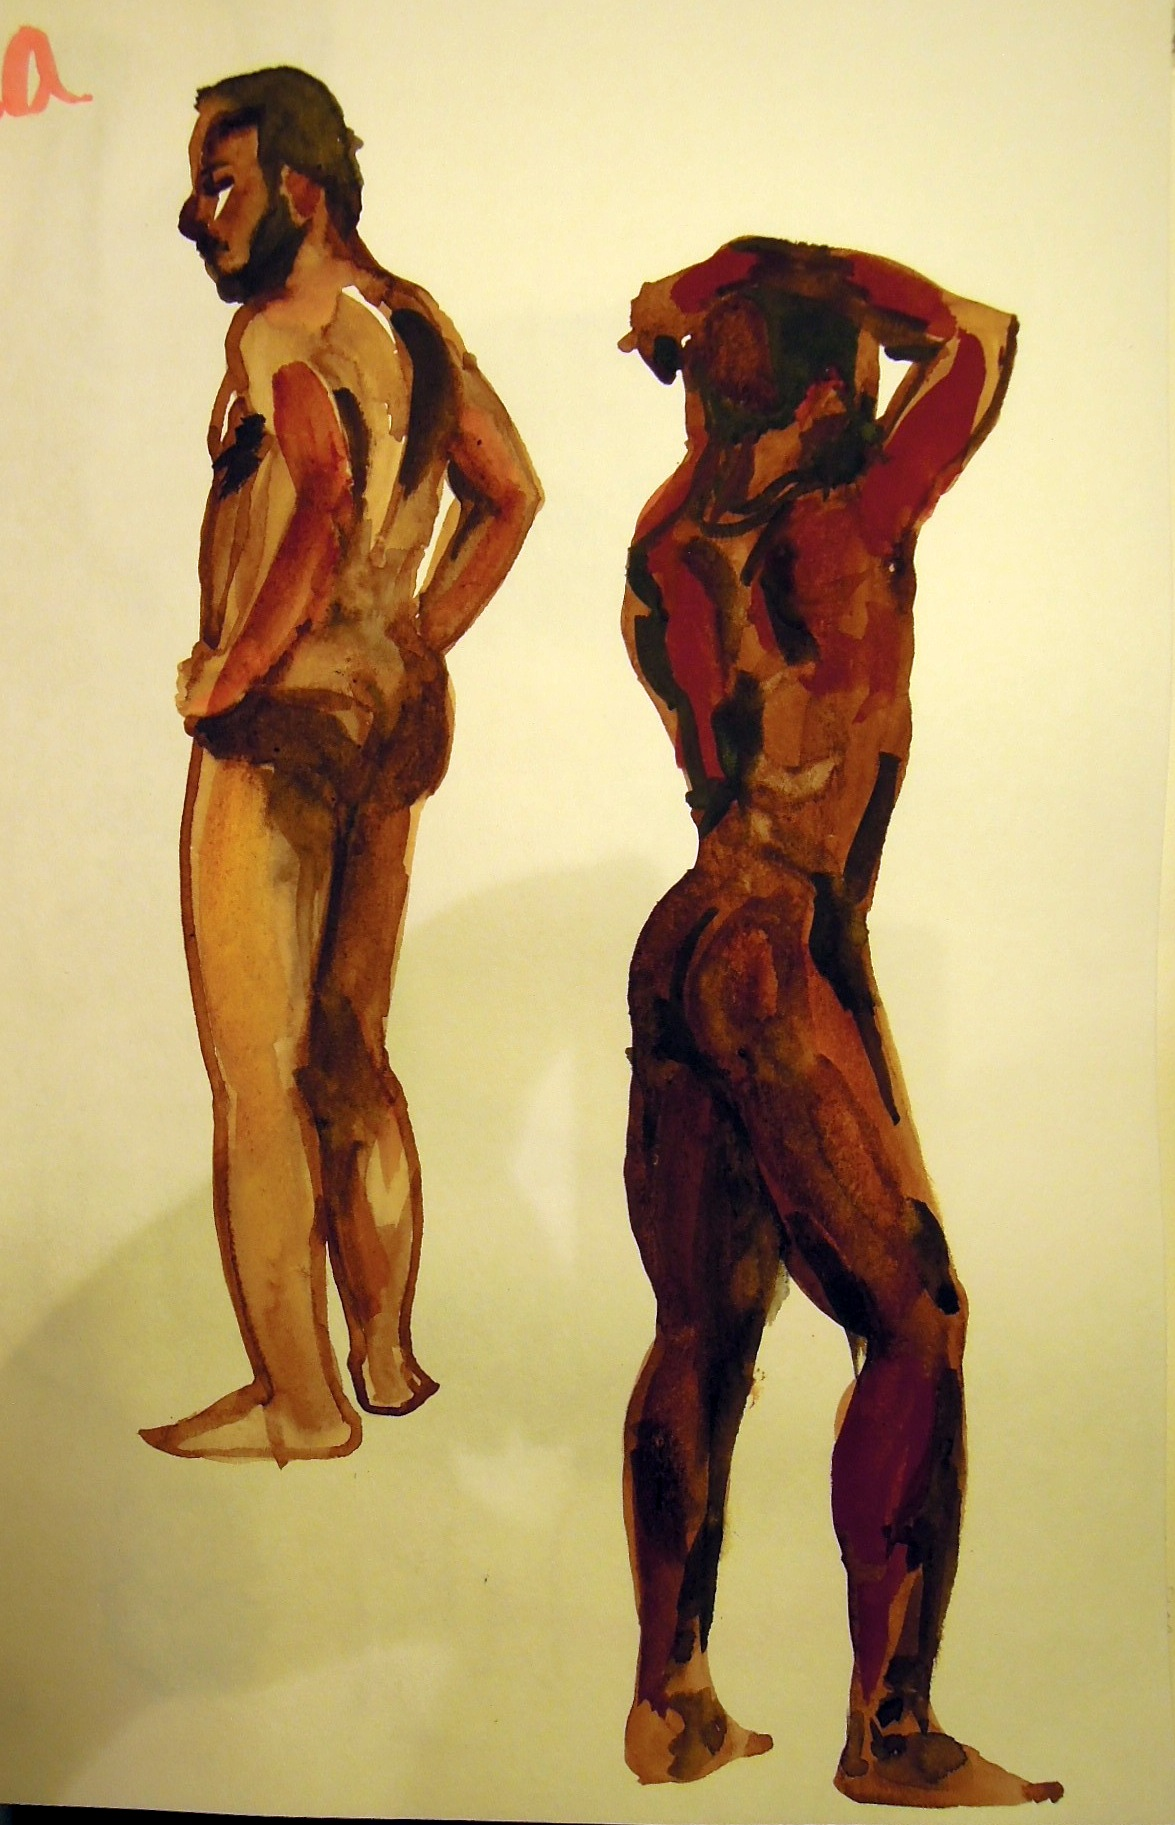 Two watercolors of a standing male model